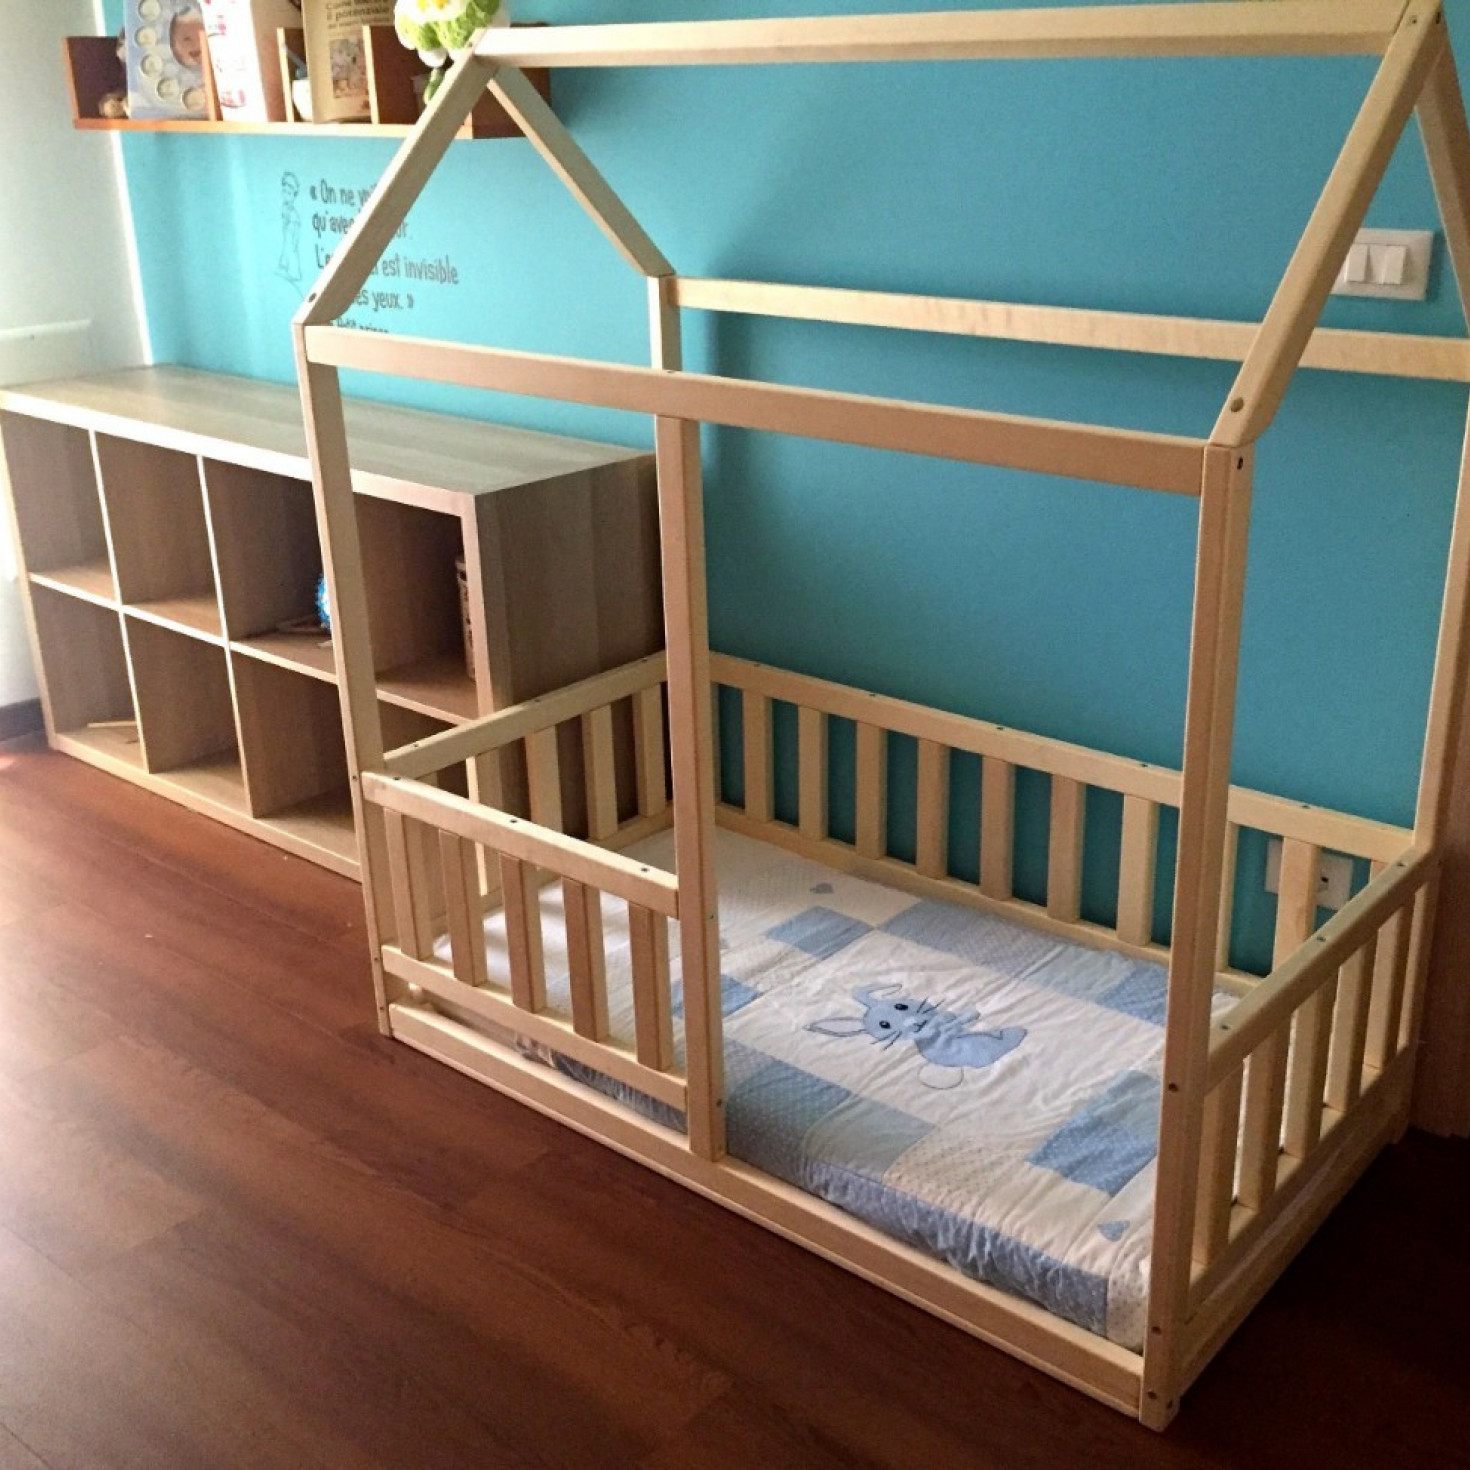 A kids floor bed with a mattress